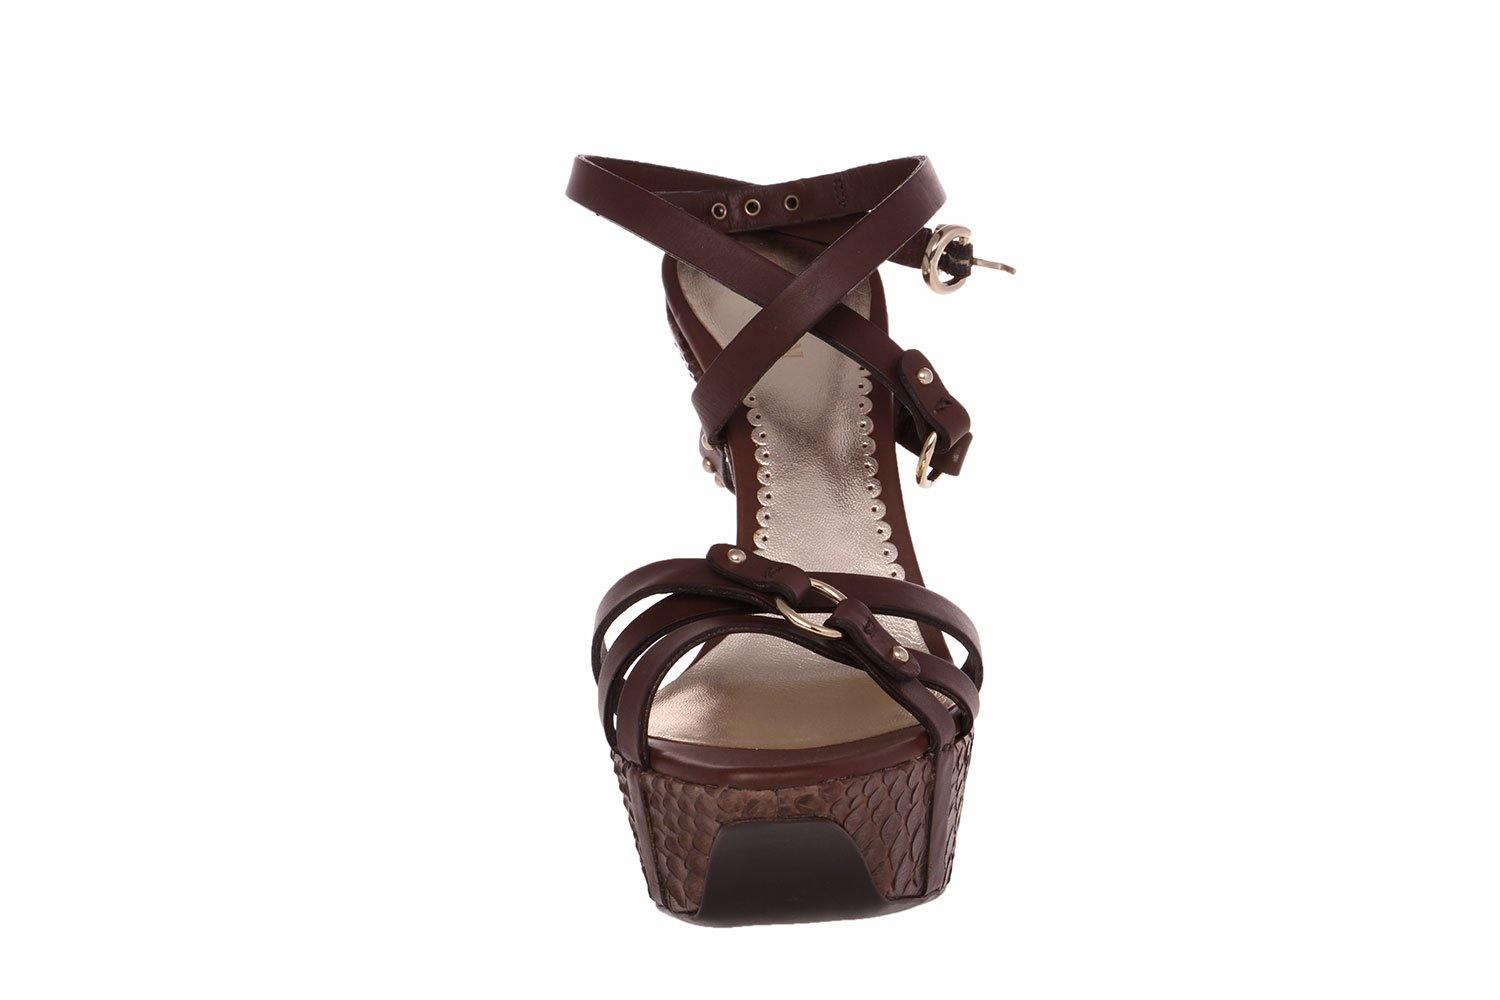 GIORGIO ARMANI Details Women Brown Snake Embossed Platform Wedge Strappy Sandals Shoes B00KJRCZAC 7 B(M) US|Brown